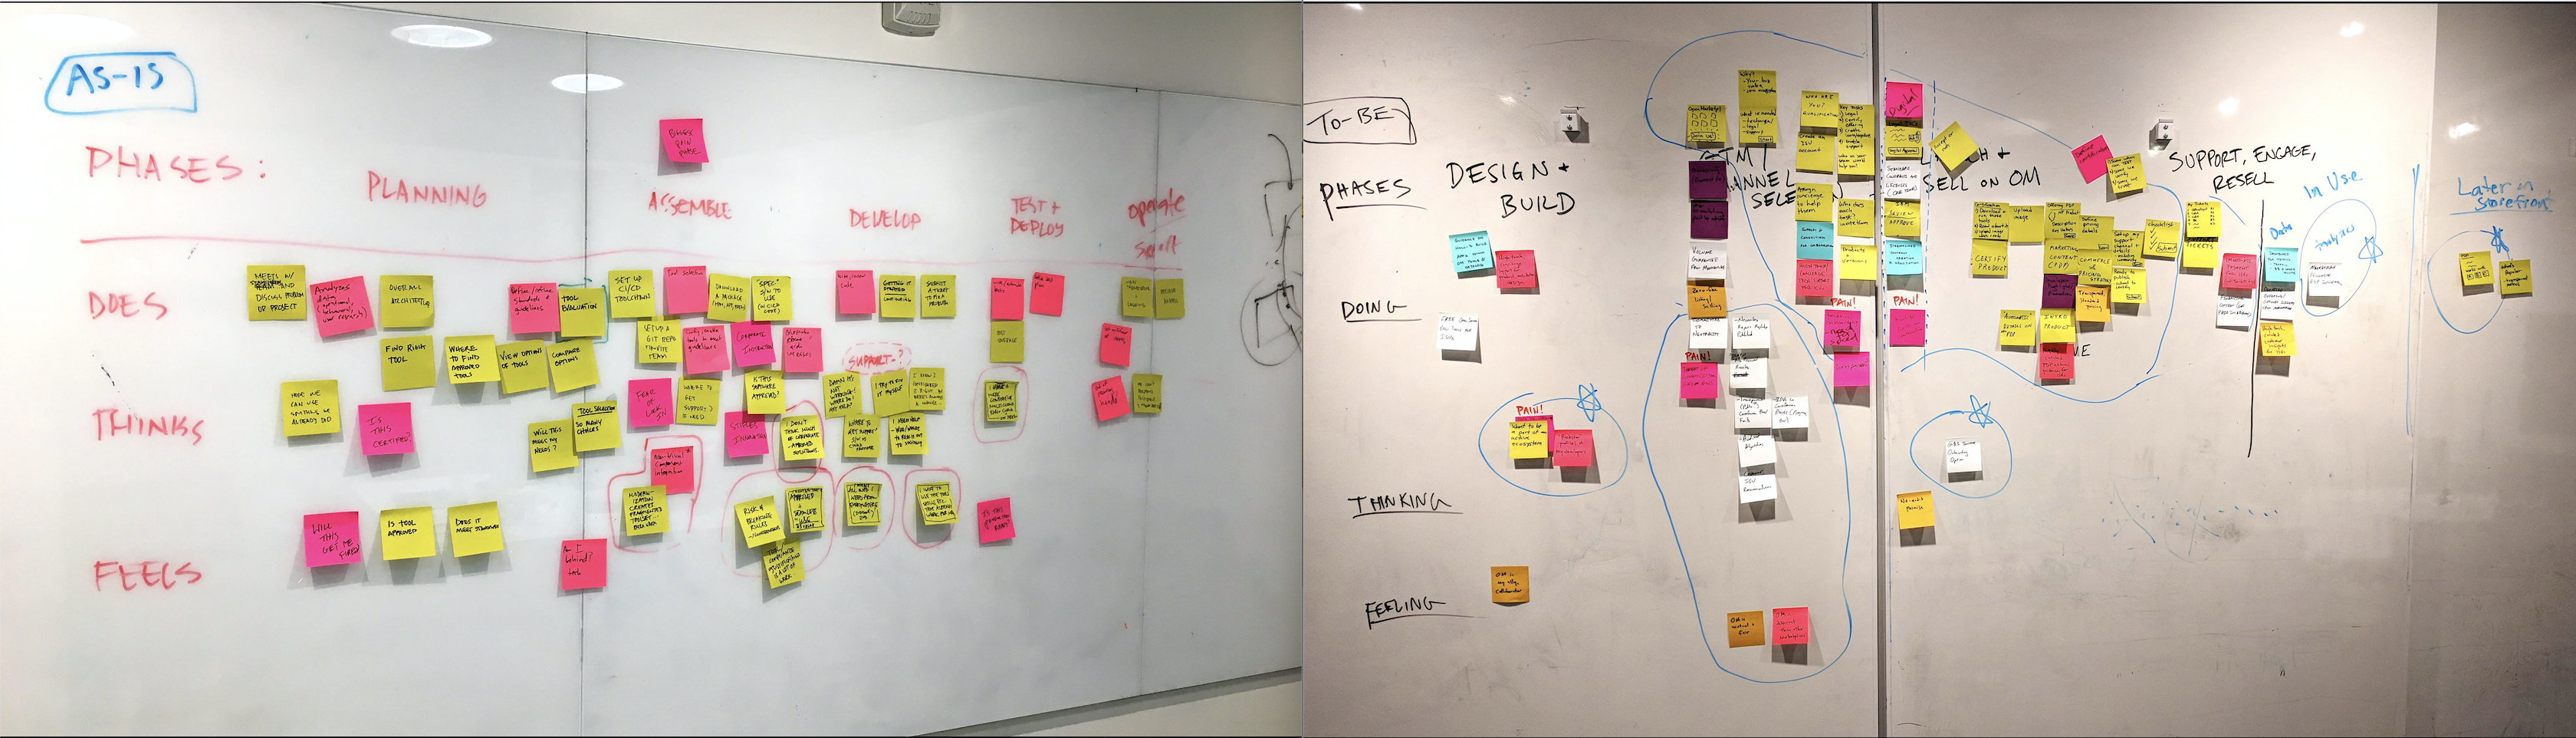 As-Is and To-Be journey mapping